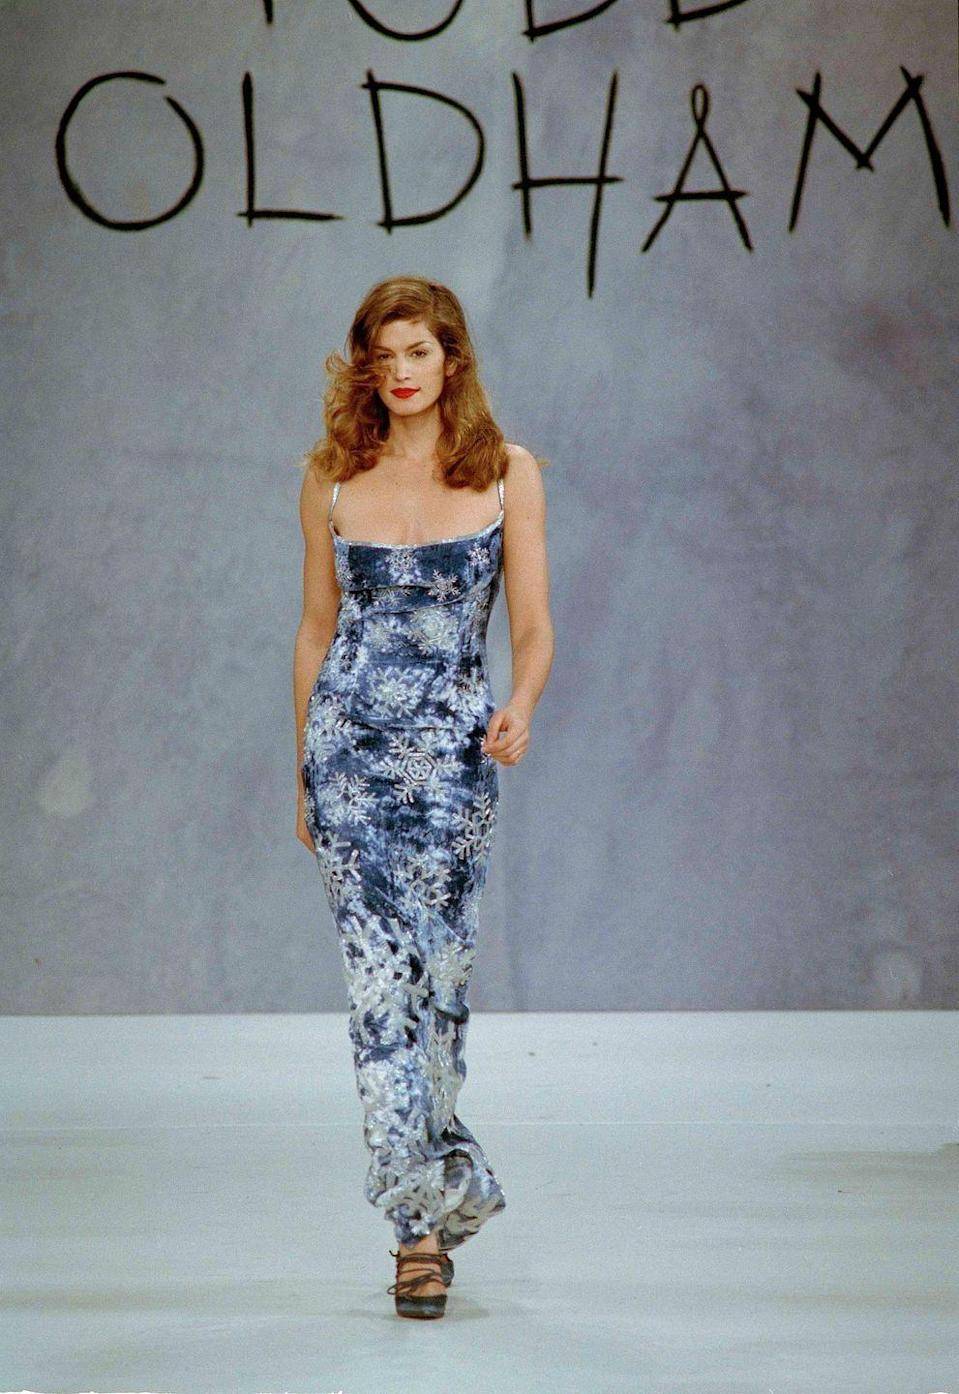 <p>More than most, Crawford's renown in the '90s superseded the industry. She was—and still is—a cultural icon, starring in not just myriad fashion campaigns, but also in Pepsi commercials. Her appearance on the small screen, too, extended to hosting <em>House of Style</em> on MTV. With her distinct beauty mark, her face was plastered on billboards and advertisements. And now, her daughter, Kaia Gerber, is following in her famous footsteps. </p>